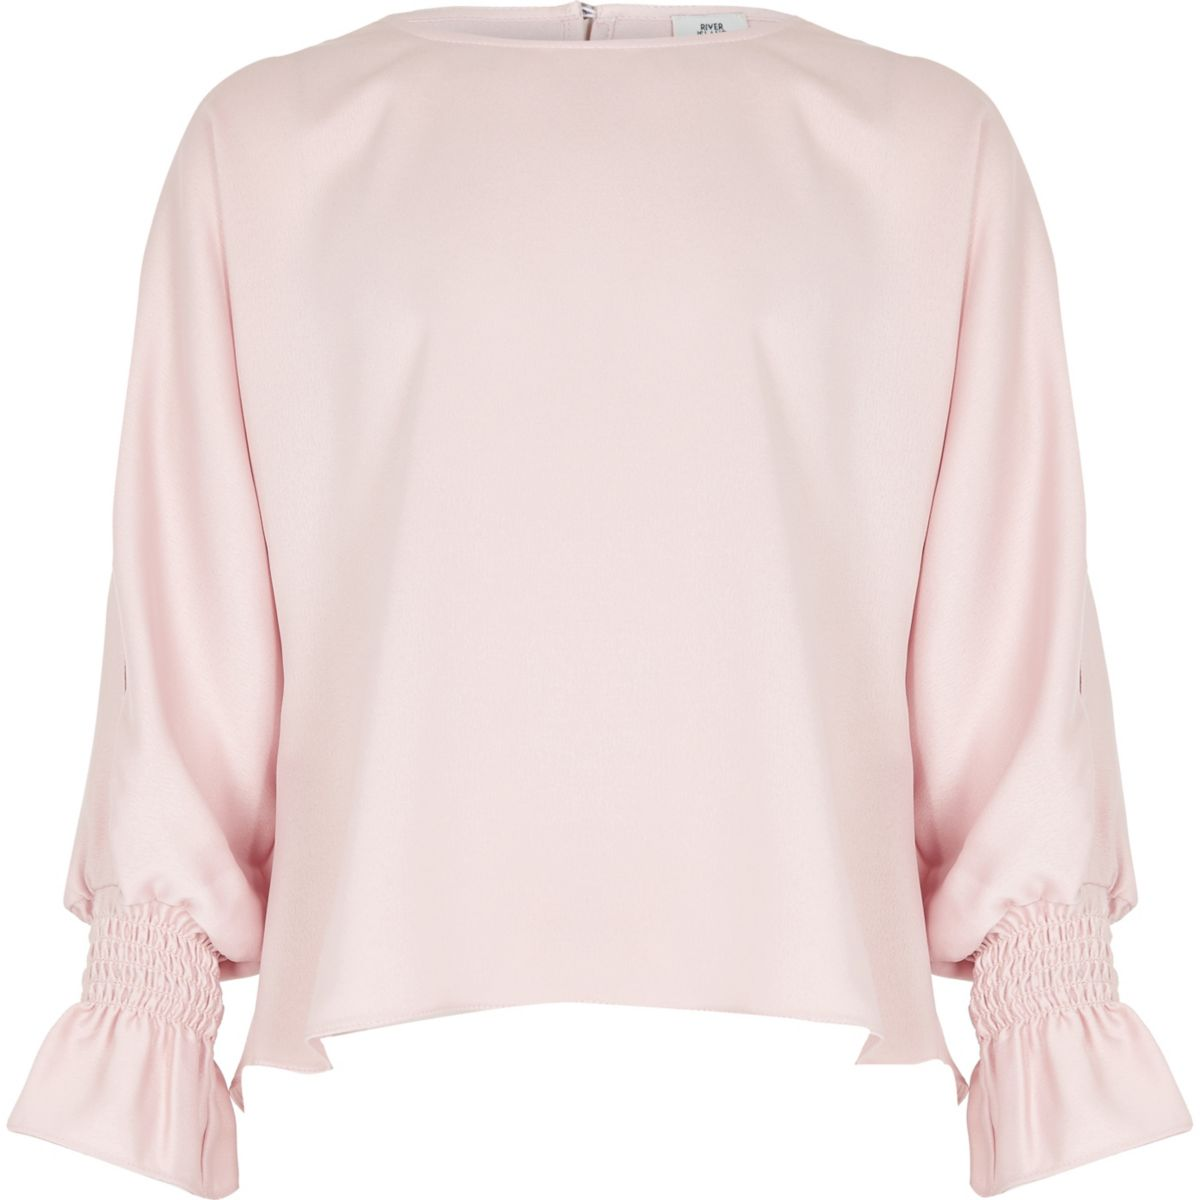 Pink long split sleeve top